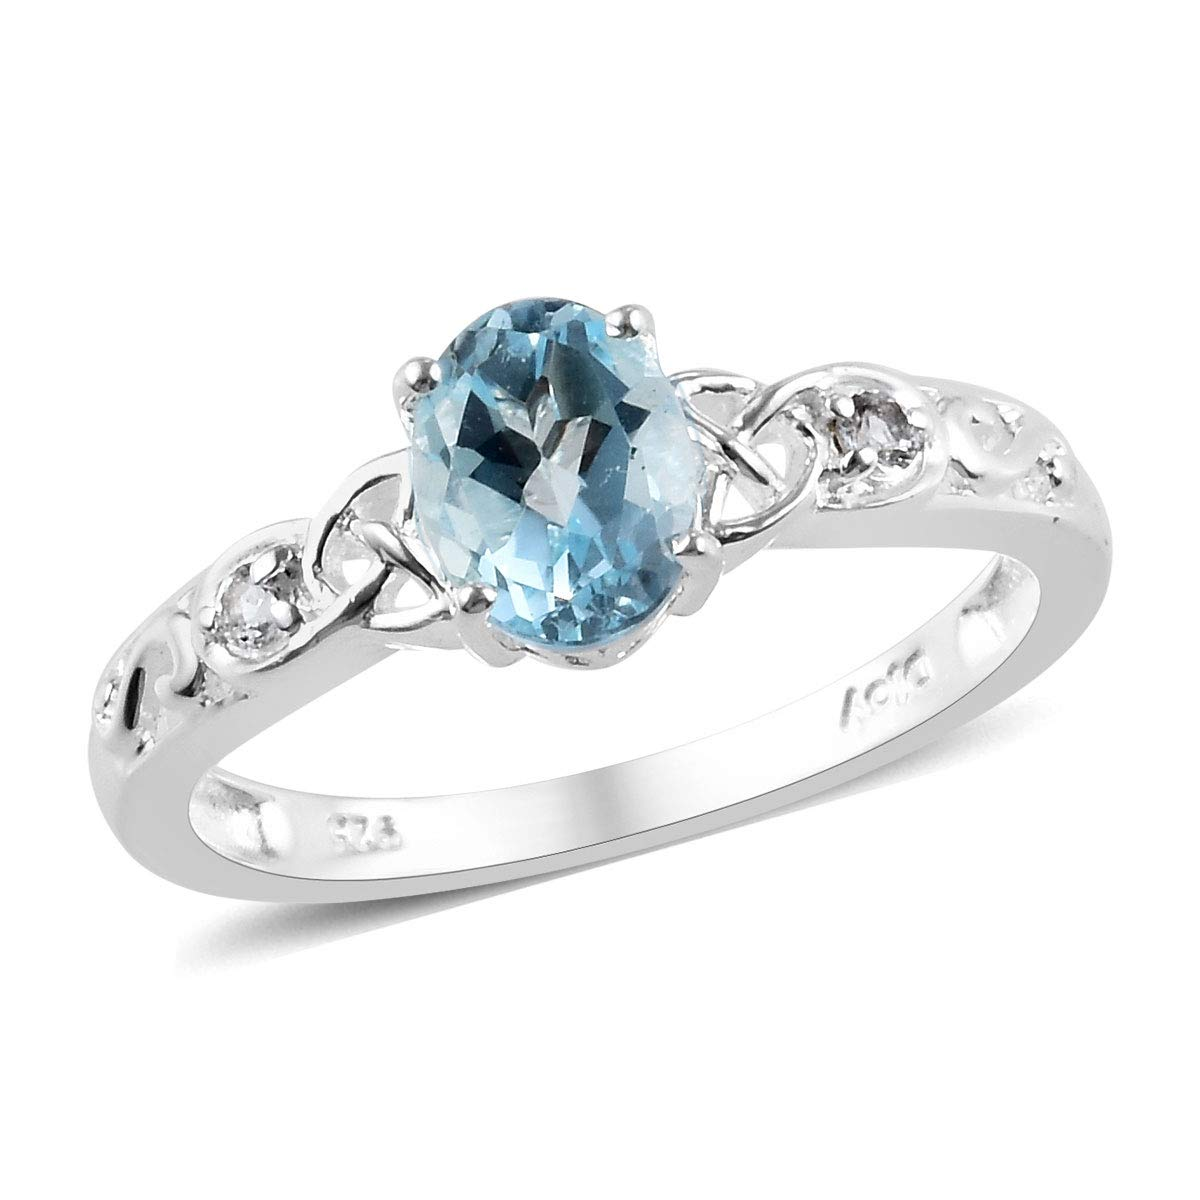 925 Sterling Silver Oval Sky Blue Topaz White Topaz Statement Ring for Women Mothers Day Gifts Cttw 1.2